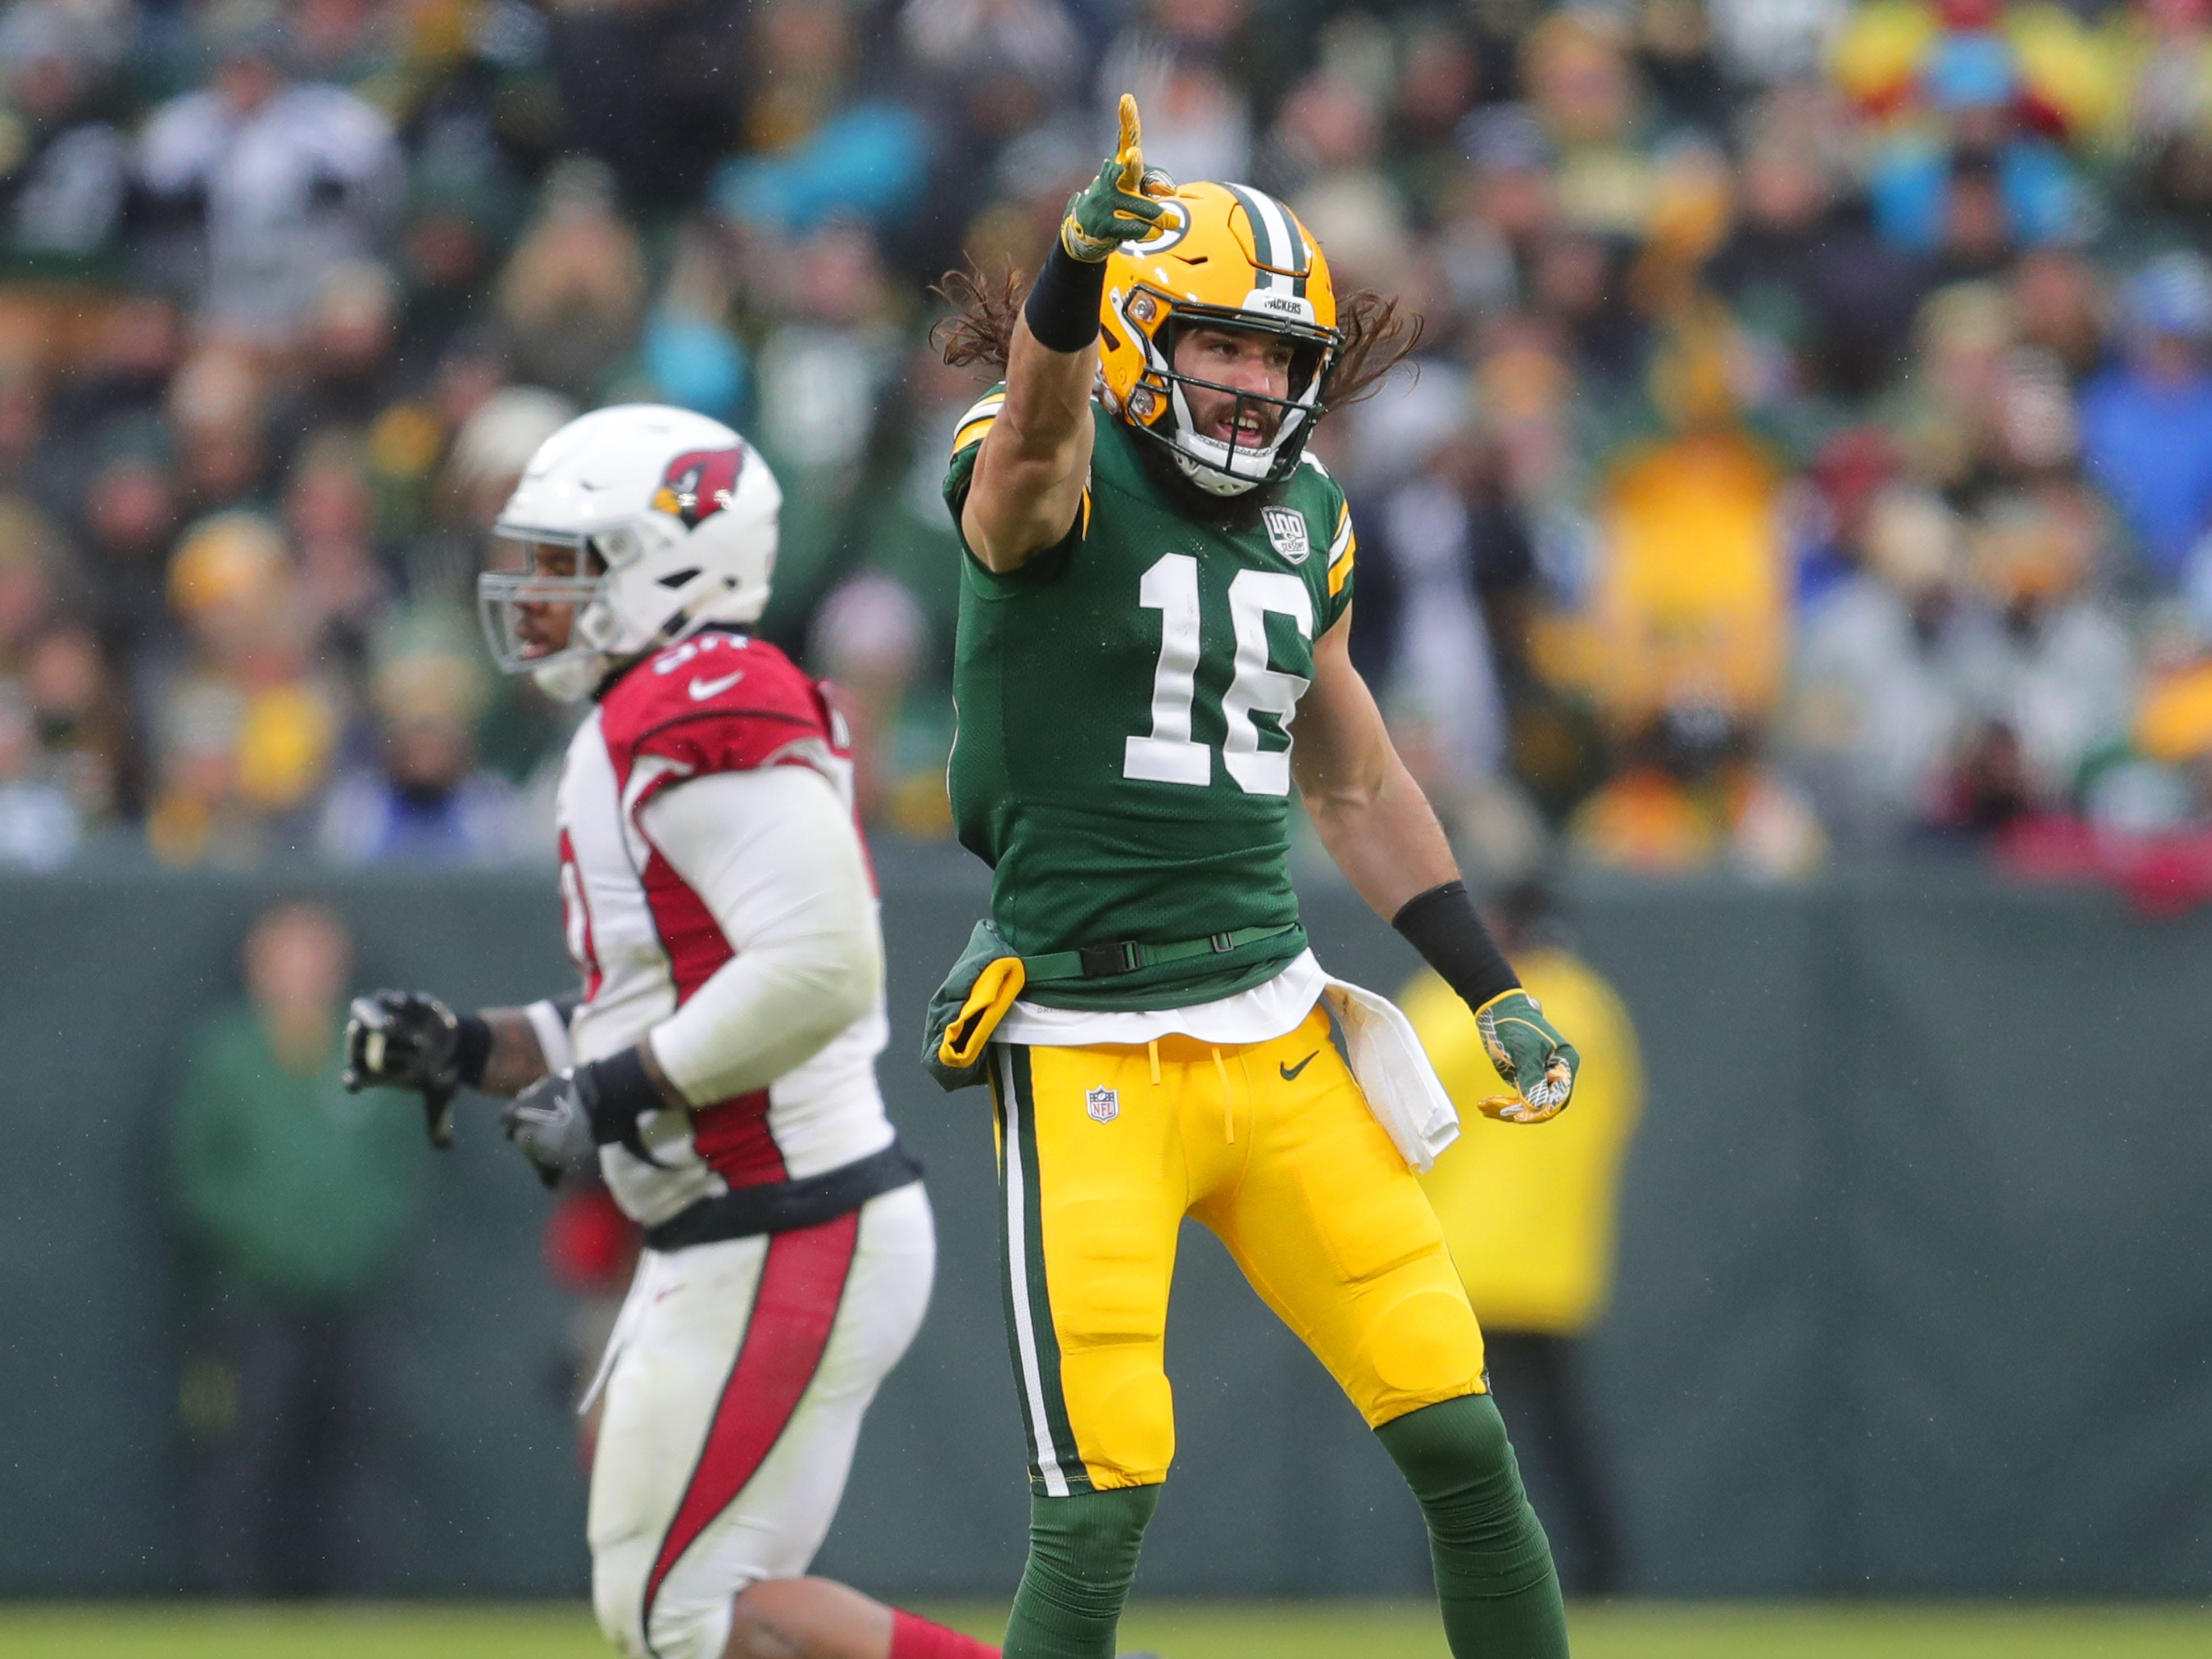 during the 4th quarter of Green Bay Packers game 20-17 loss against the Arizona Cardinals on Sunday, December 2, 2018 at Lambeau Field in Green Bay, Wis. Mike De Sisti / USA TODAY NETWORK-Wis